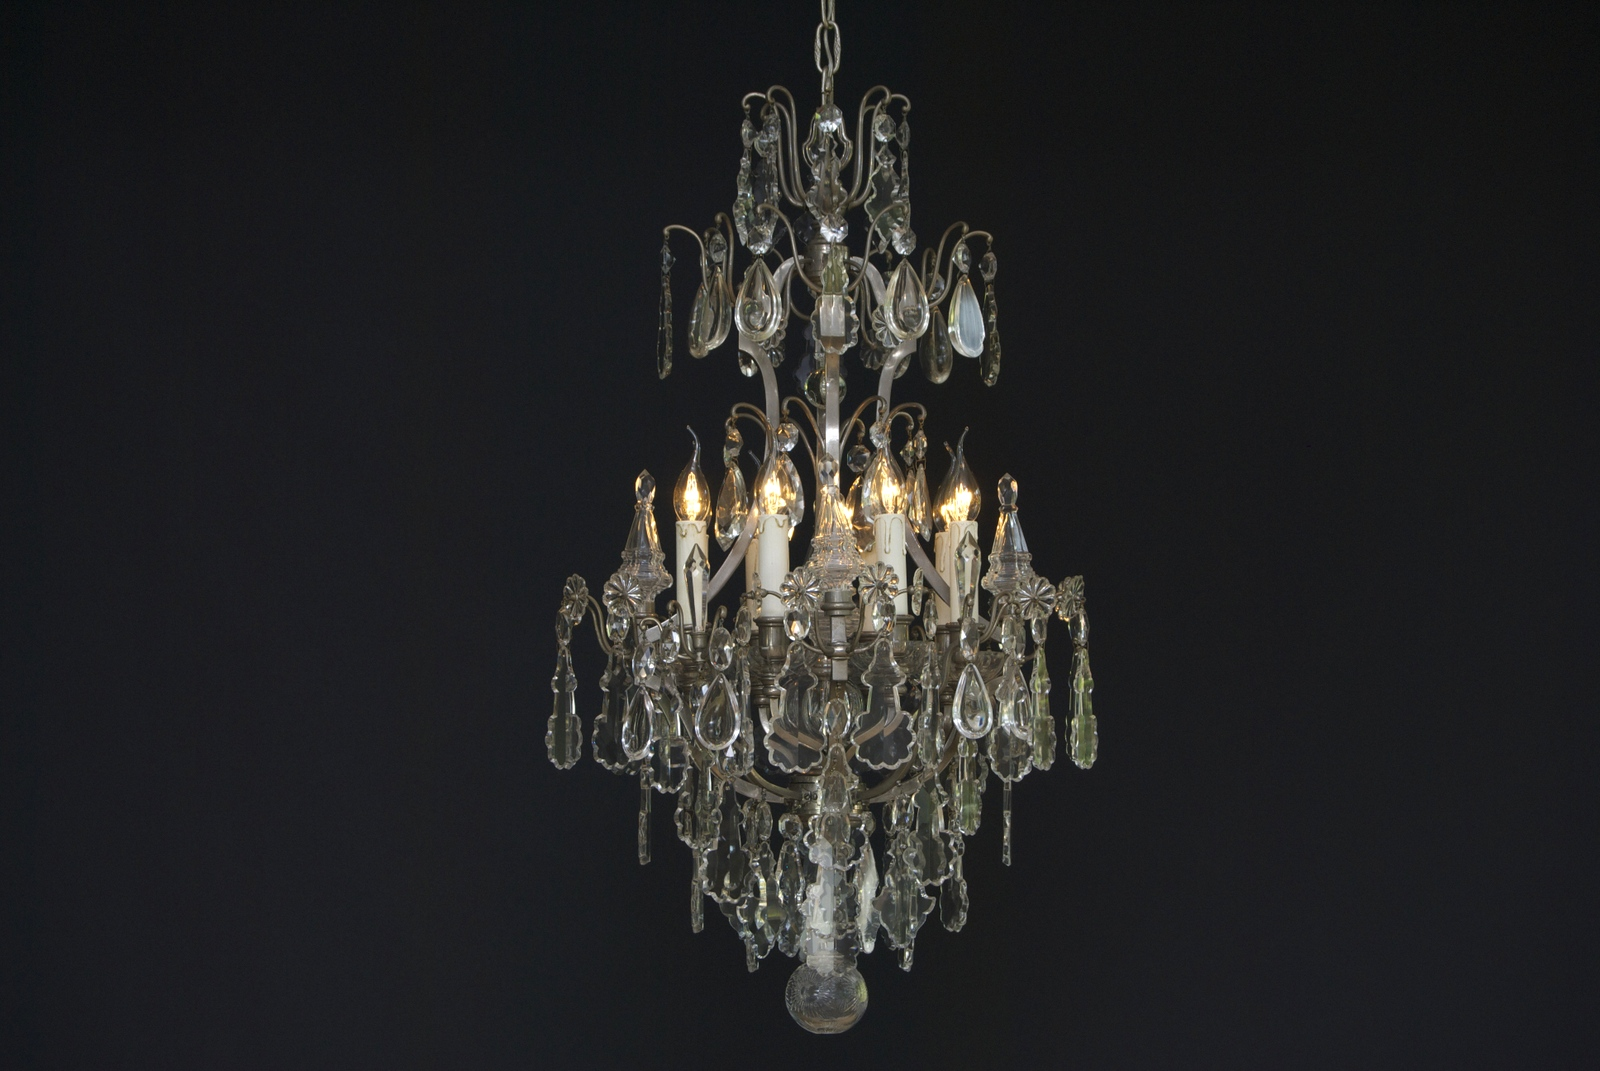 French silvered chandelier with 8 Light